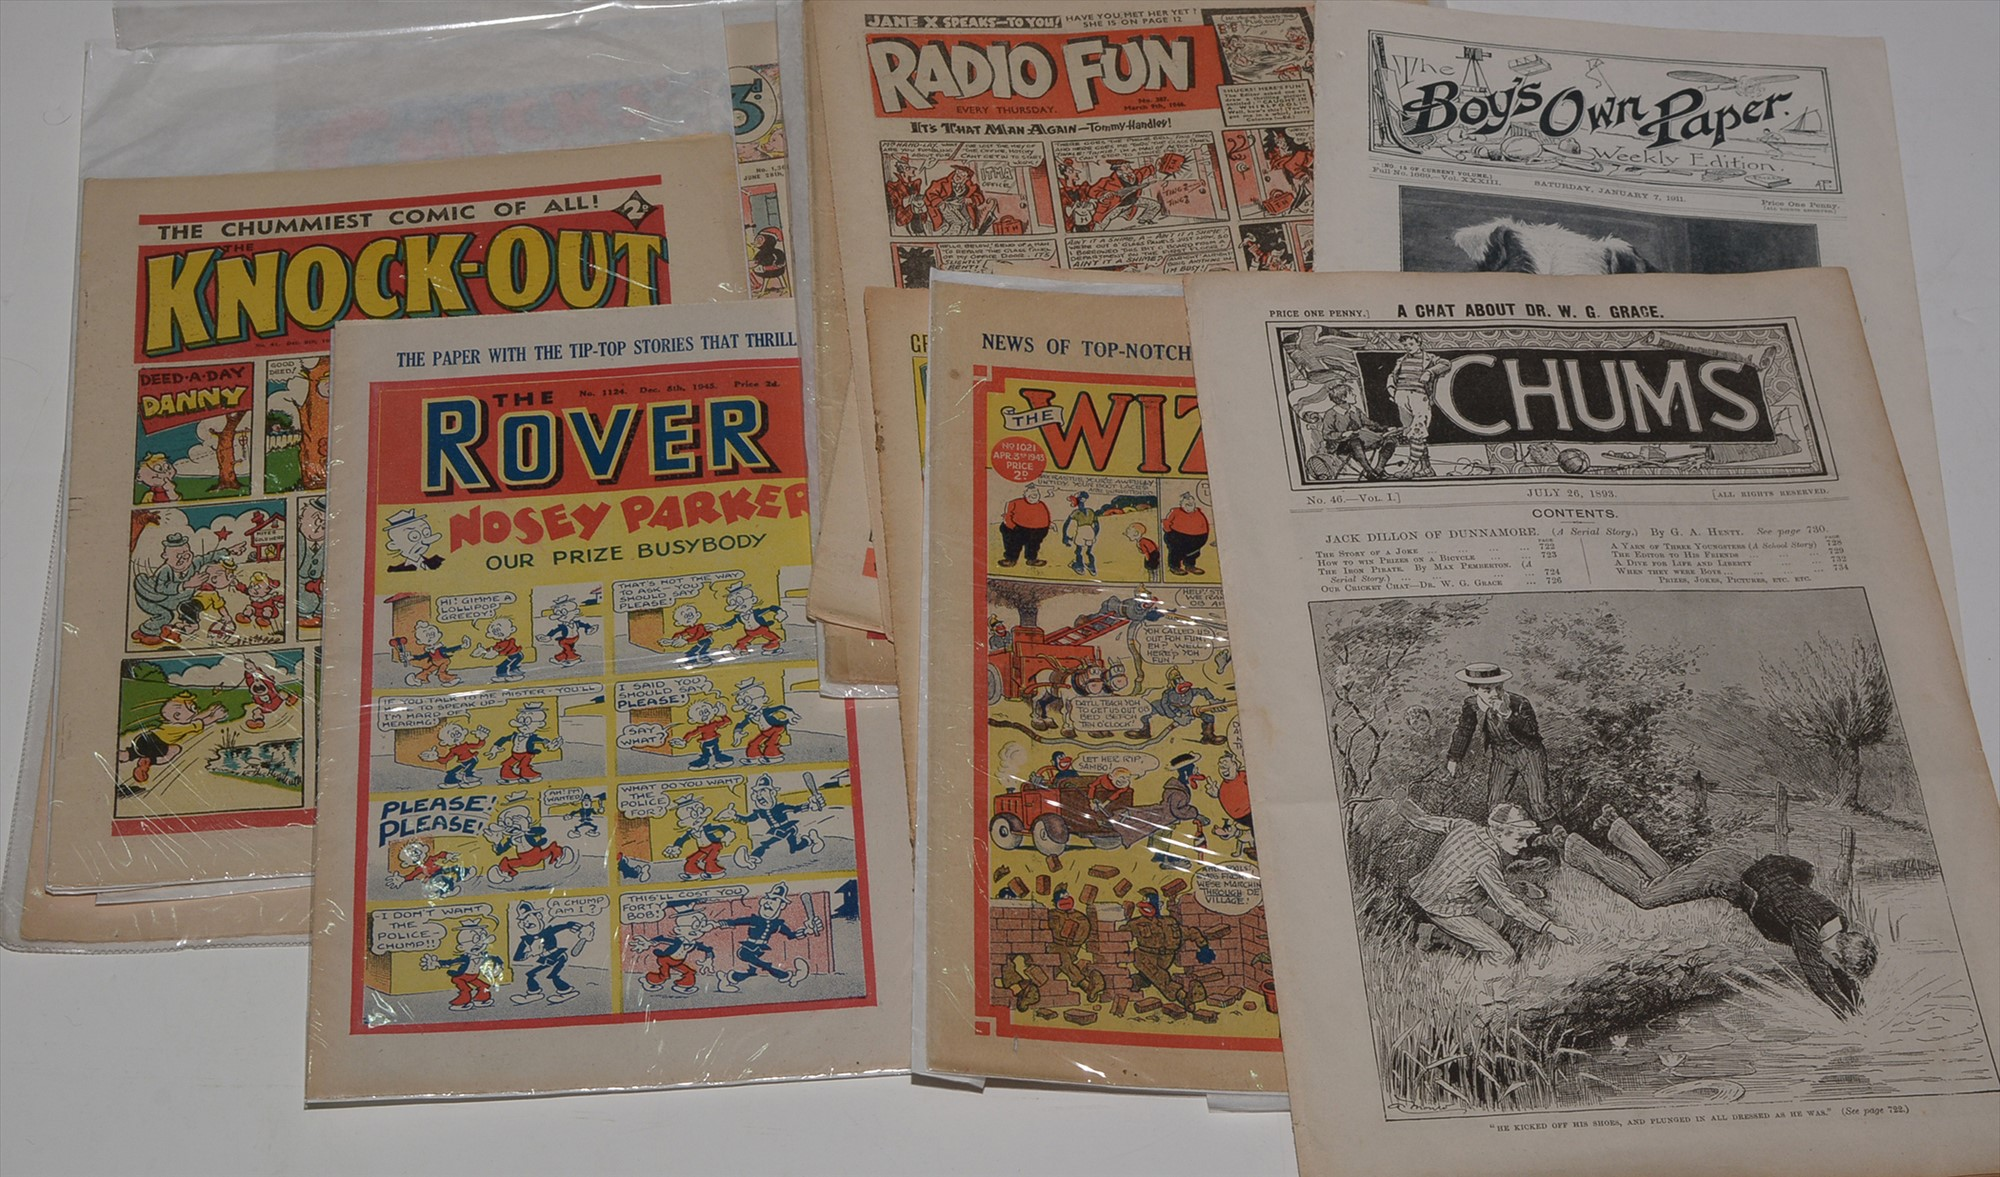 A small collection of early British comics